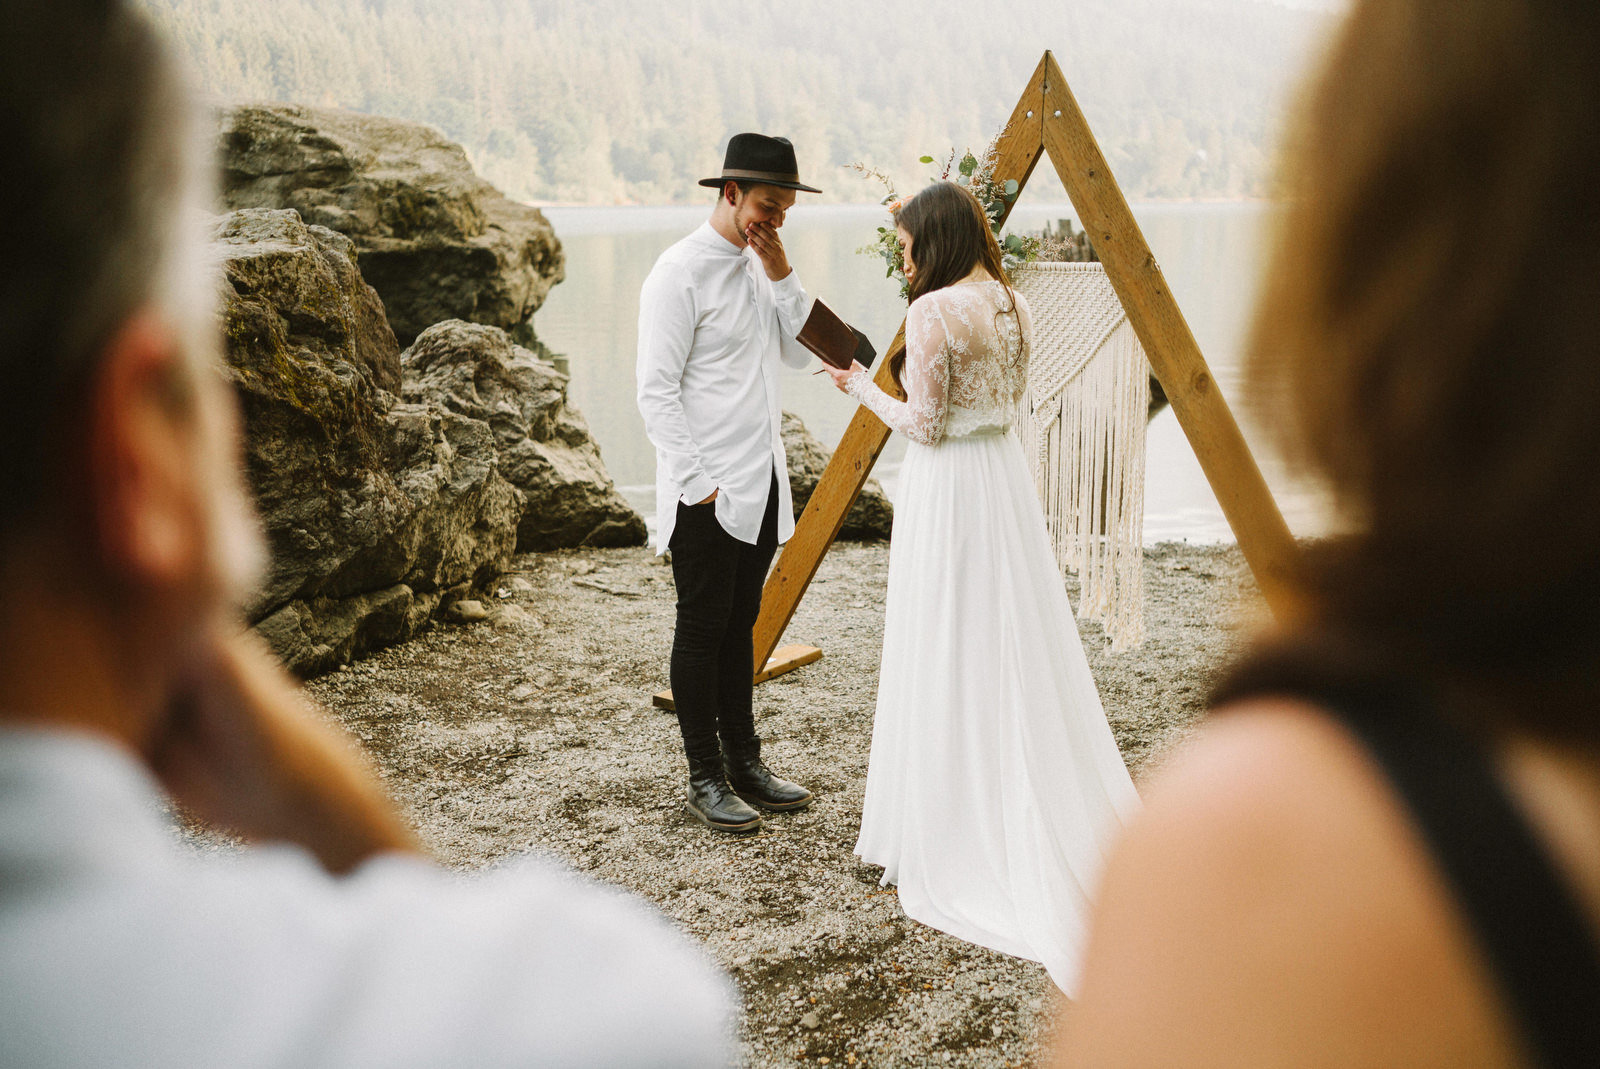 athena-and-camron-seattle-elopement-wedding-benj-haisch-rattlesnake-lake-christian-couple-goals46